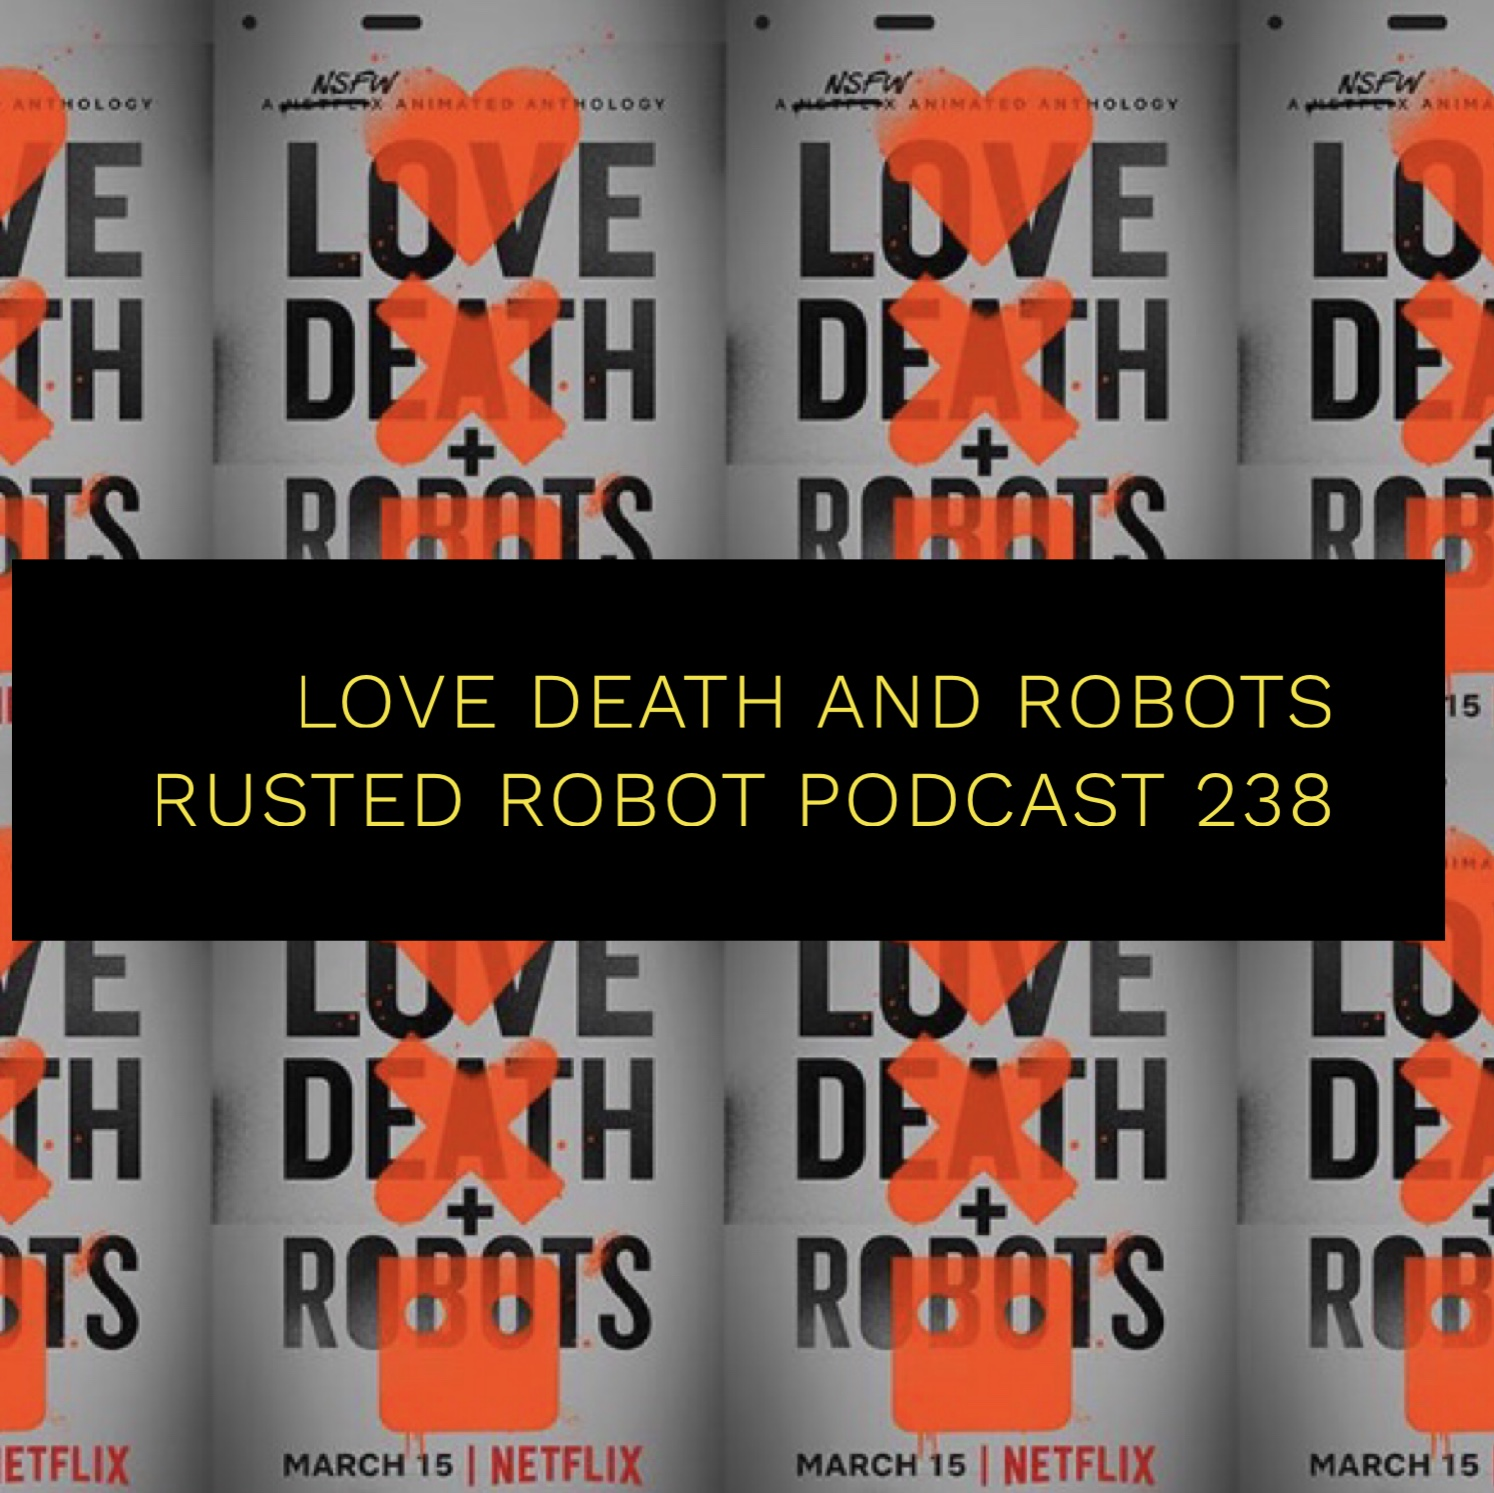 Love Death and Robots - 238